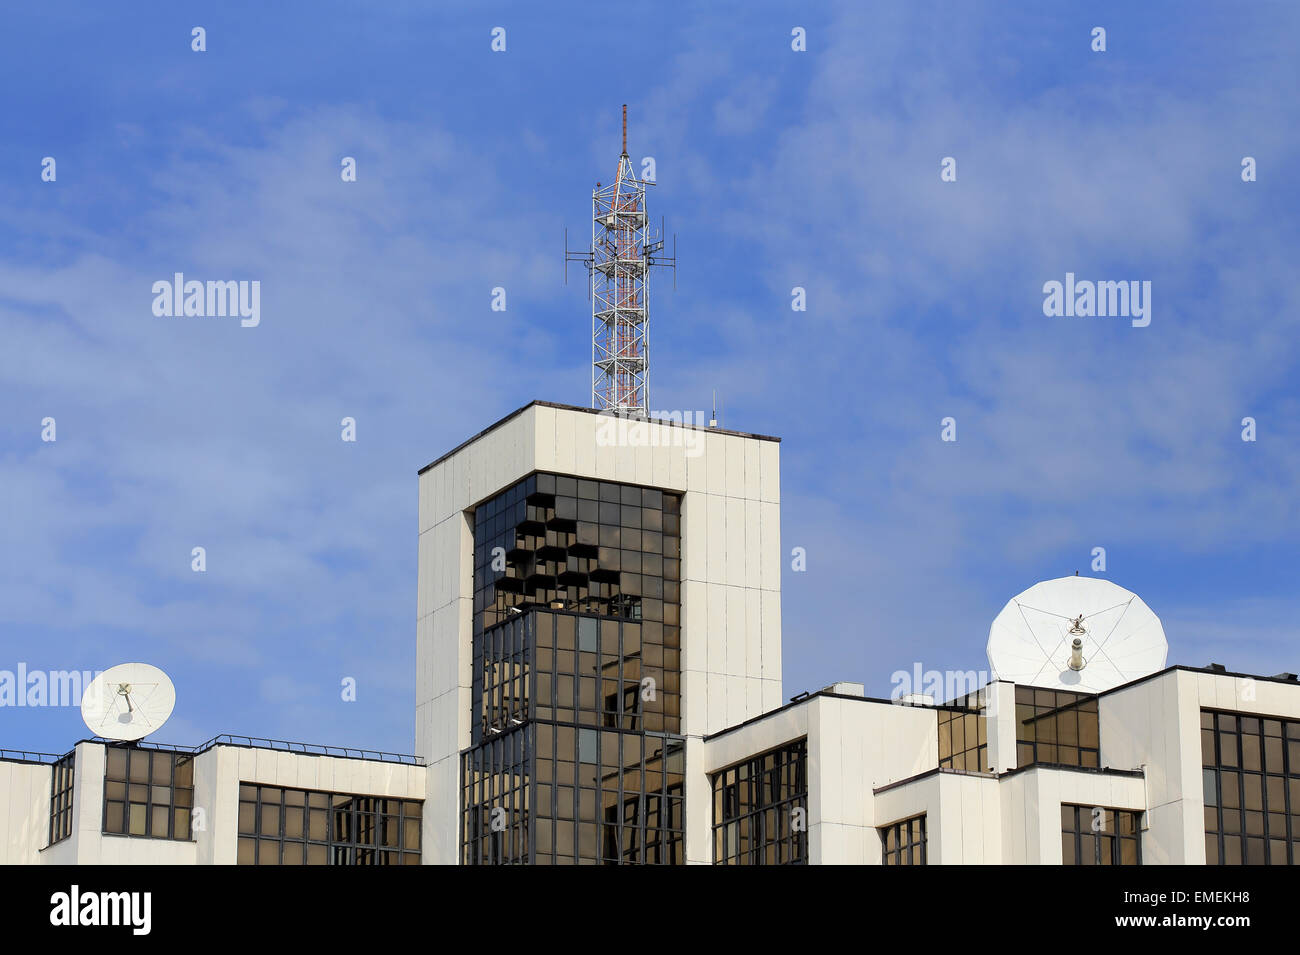 Top of the tech building with glass walls and radio equipment on the roof - Stock Image